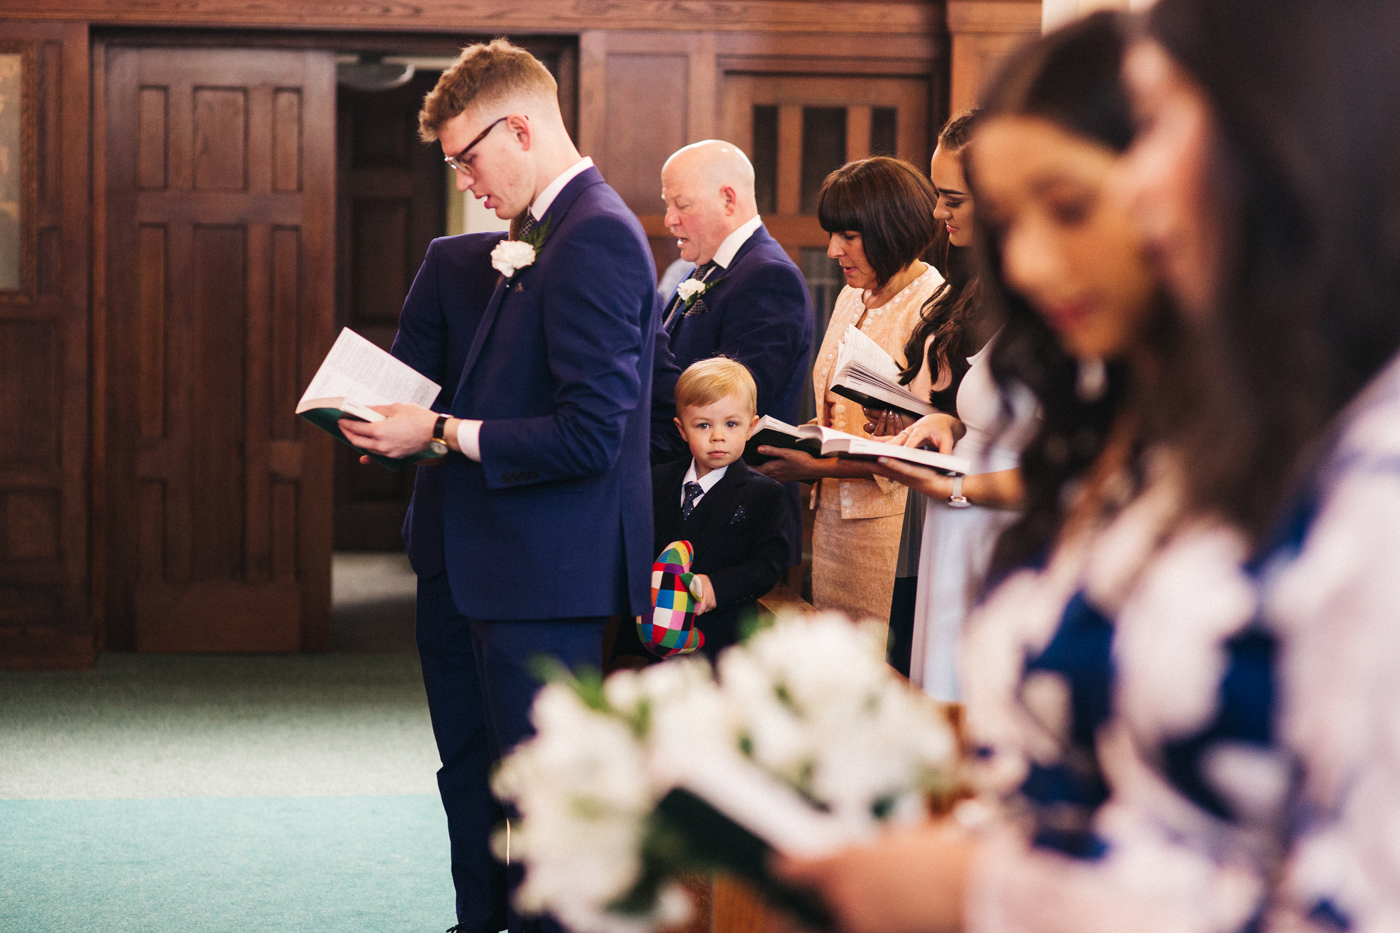 a little boy looks through the crowd at the church. relaxed teesside middlesbrough wedding photographer, wedding at home